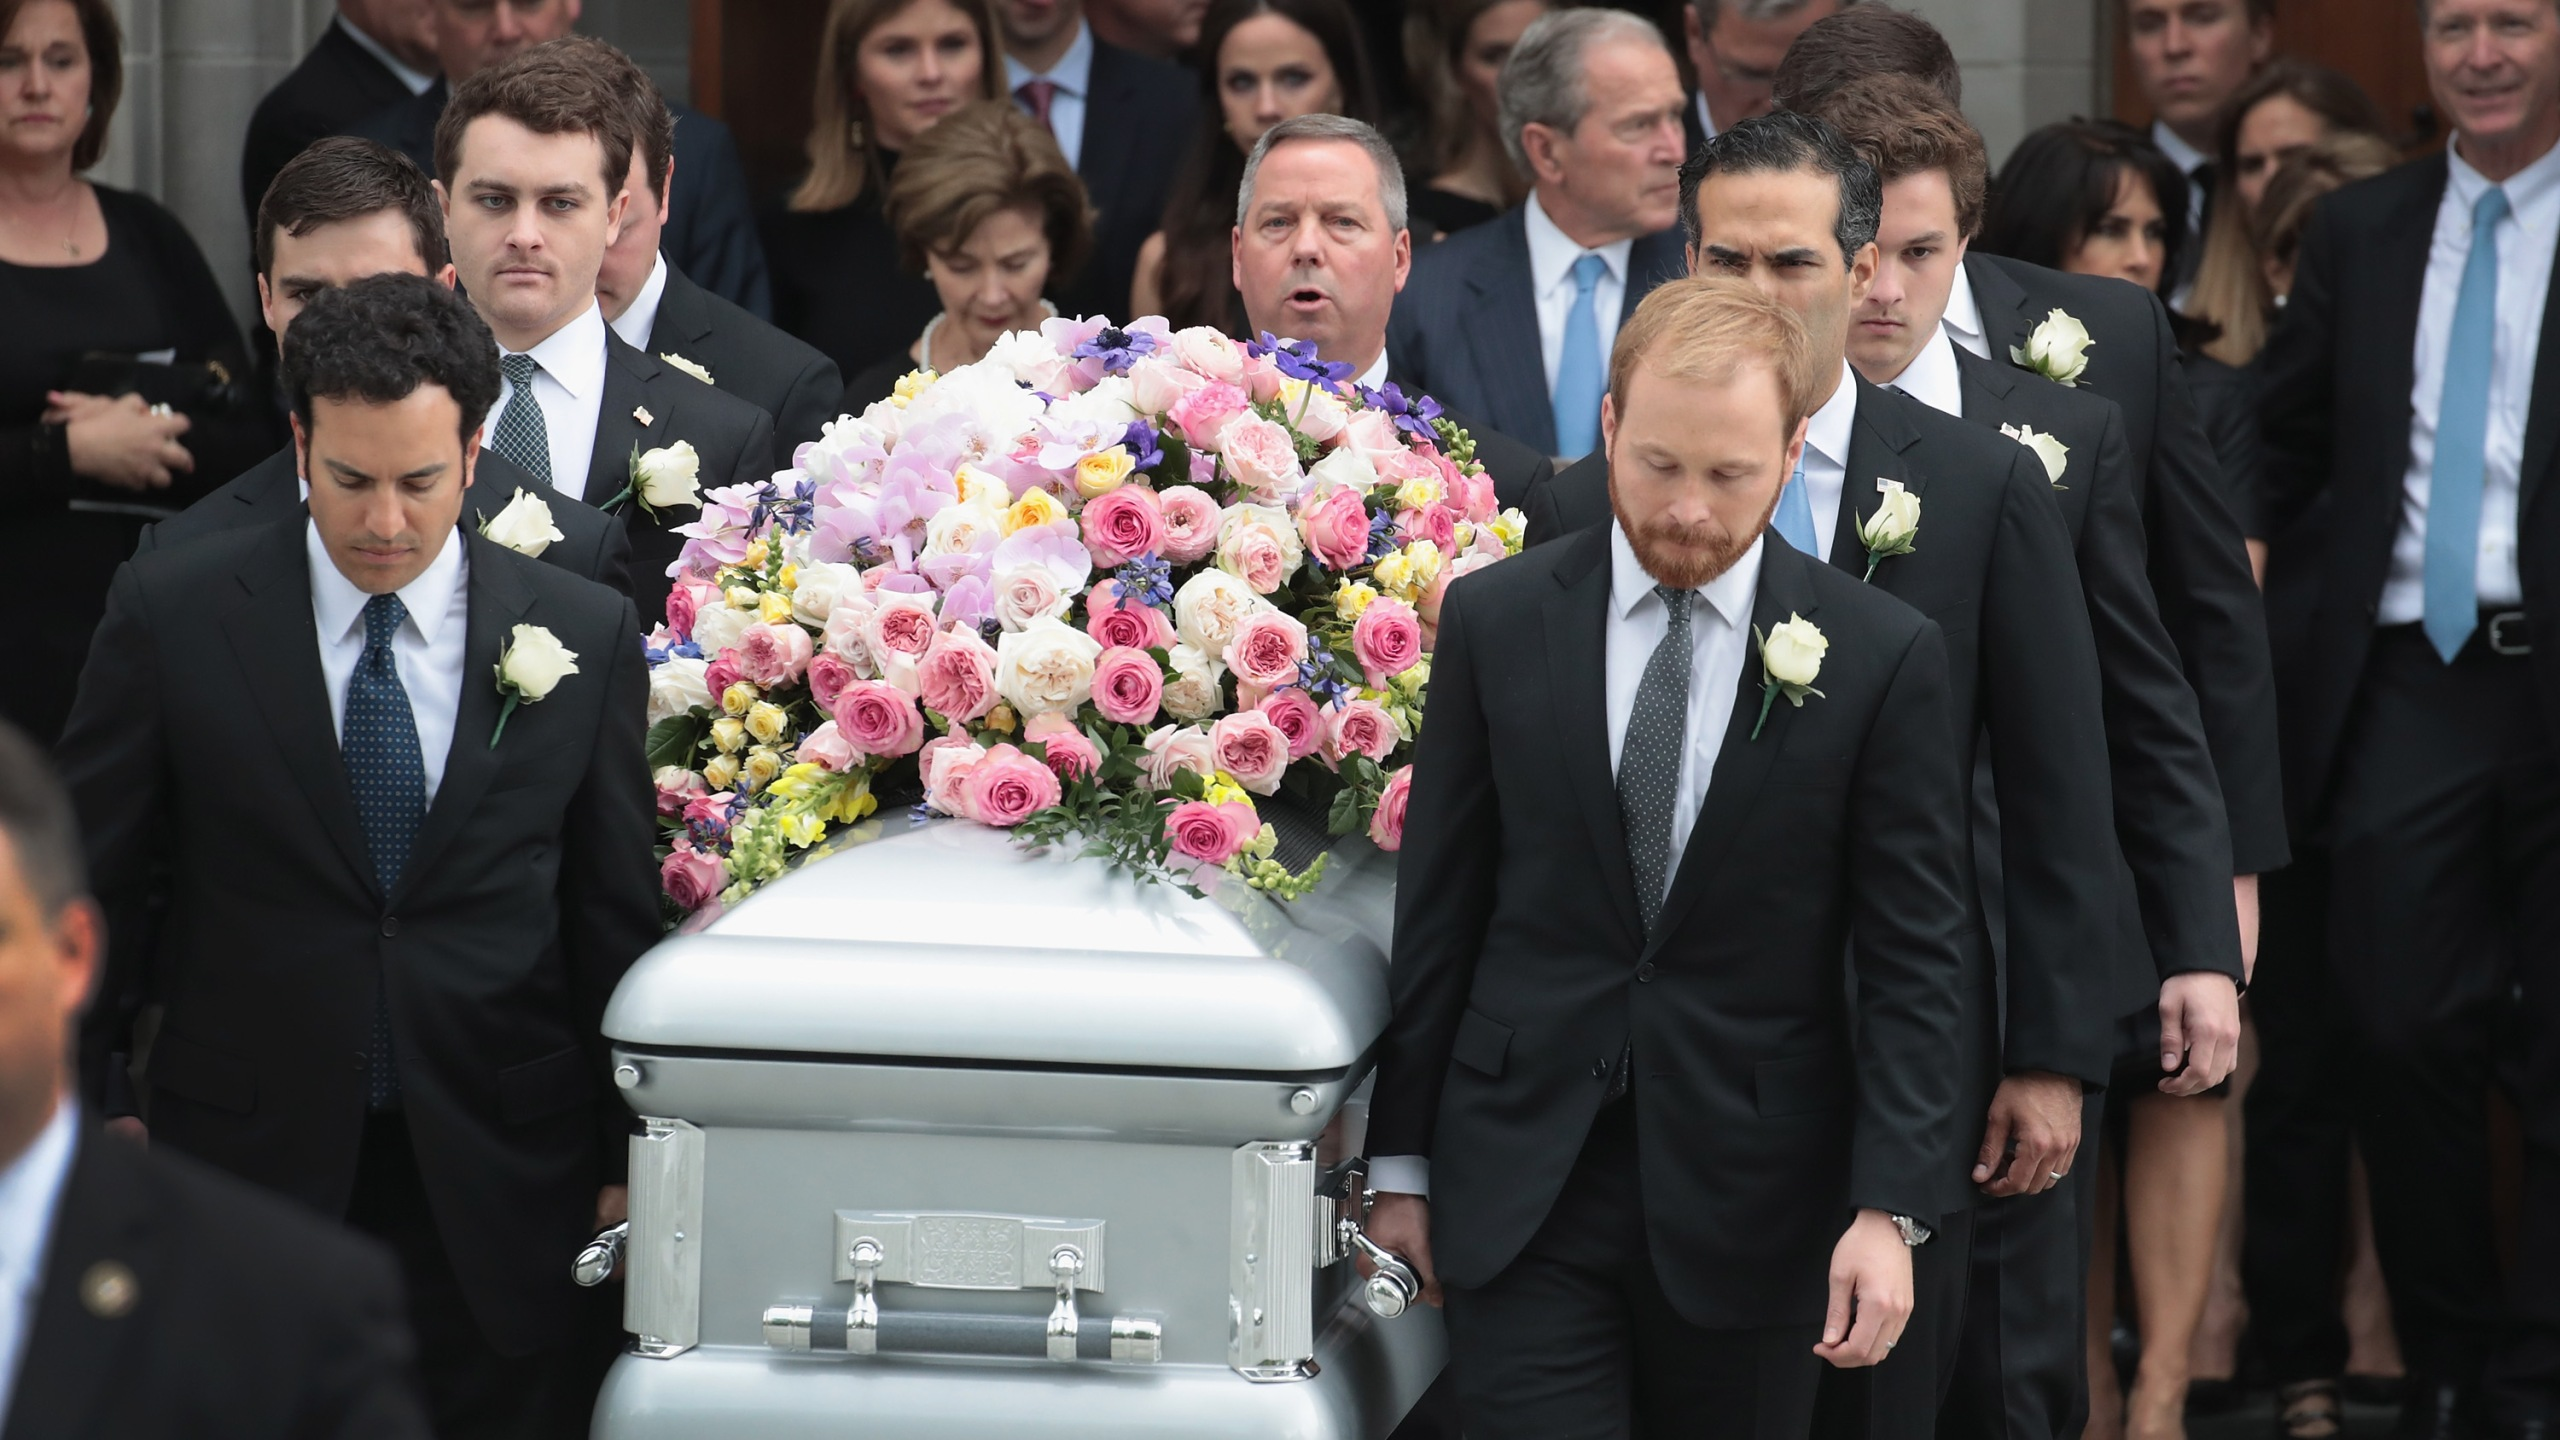 The coffin of former first lady Barbara Bush is carried from St. Martin's Episcopal Church following her funeral service on April 21, 2018 in Houston, Texas. (Credit: Scott Olson/Getty Images)